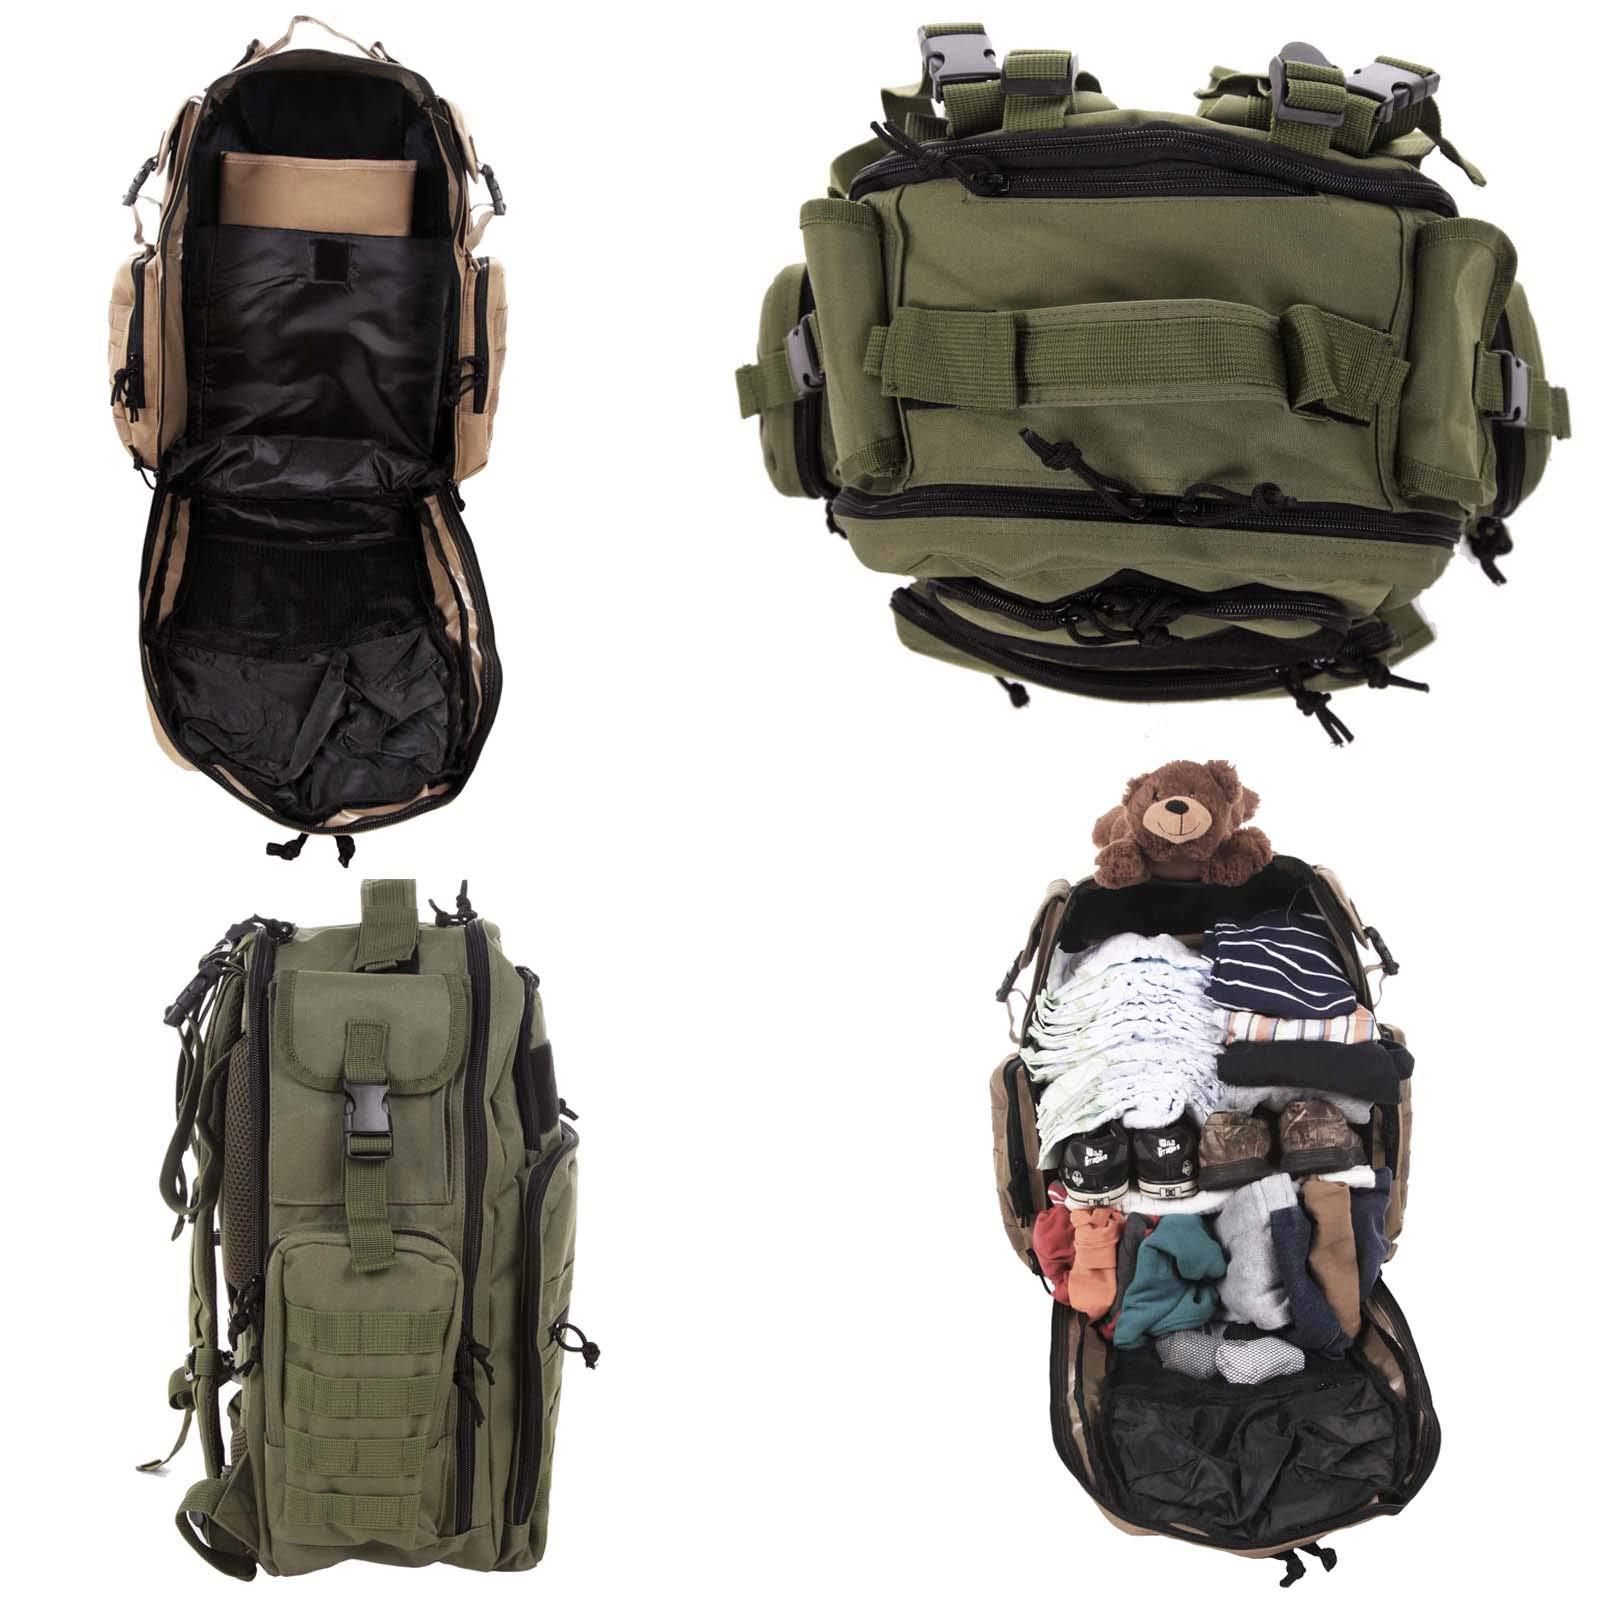 Diaper Bag Backpack by Exodus Gear + Adventure Diaper Bag with Changing Pad + Daddy Diaper Bag for Men and Woman + Hiking Diaper Bag + Dad Diaper Bag + Unisex Diaper Bag + Baby Care (Green) by Exodus Gear (Image #7)